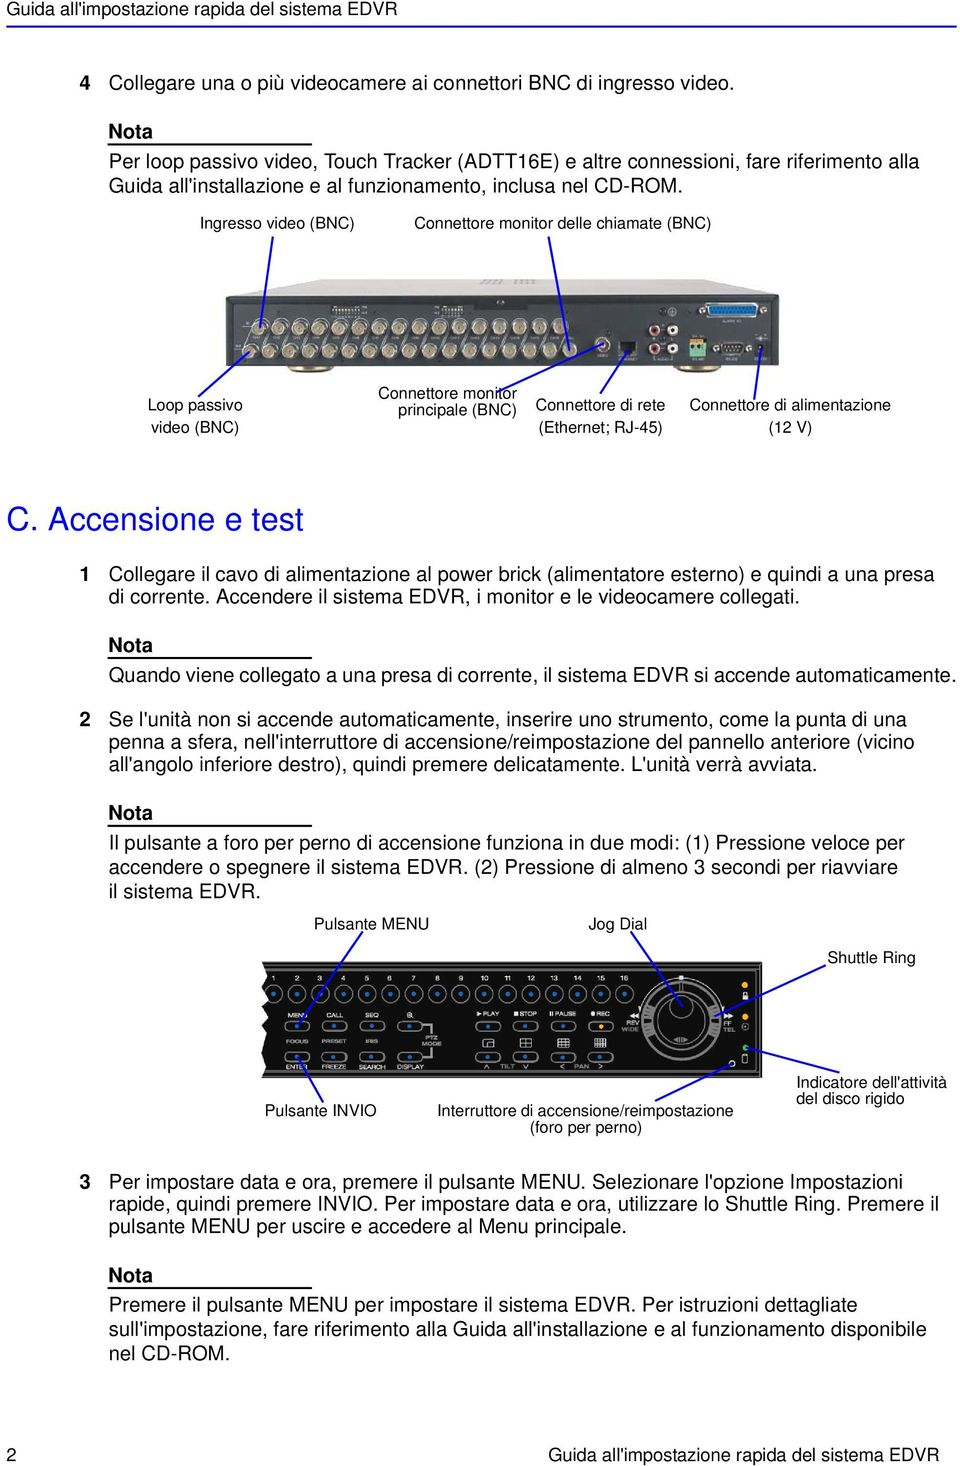 Ingresso video (BNC) Connettore monitor delle chiamate (BNC) Loop passivo video (BNC) Connettore monitor principale (BNC) Connettore di rete (Ethernet; RJ-45) Connettore di alimentazione (12 V) C.